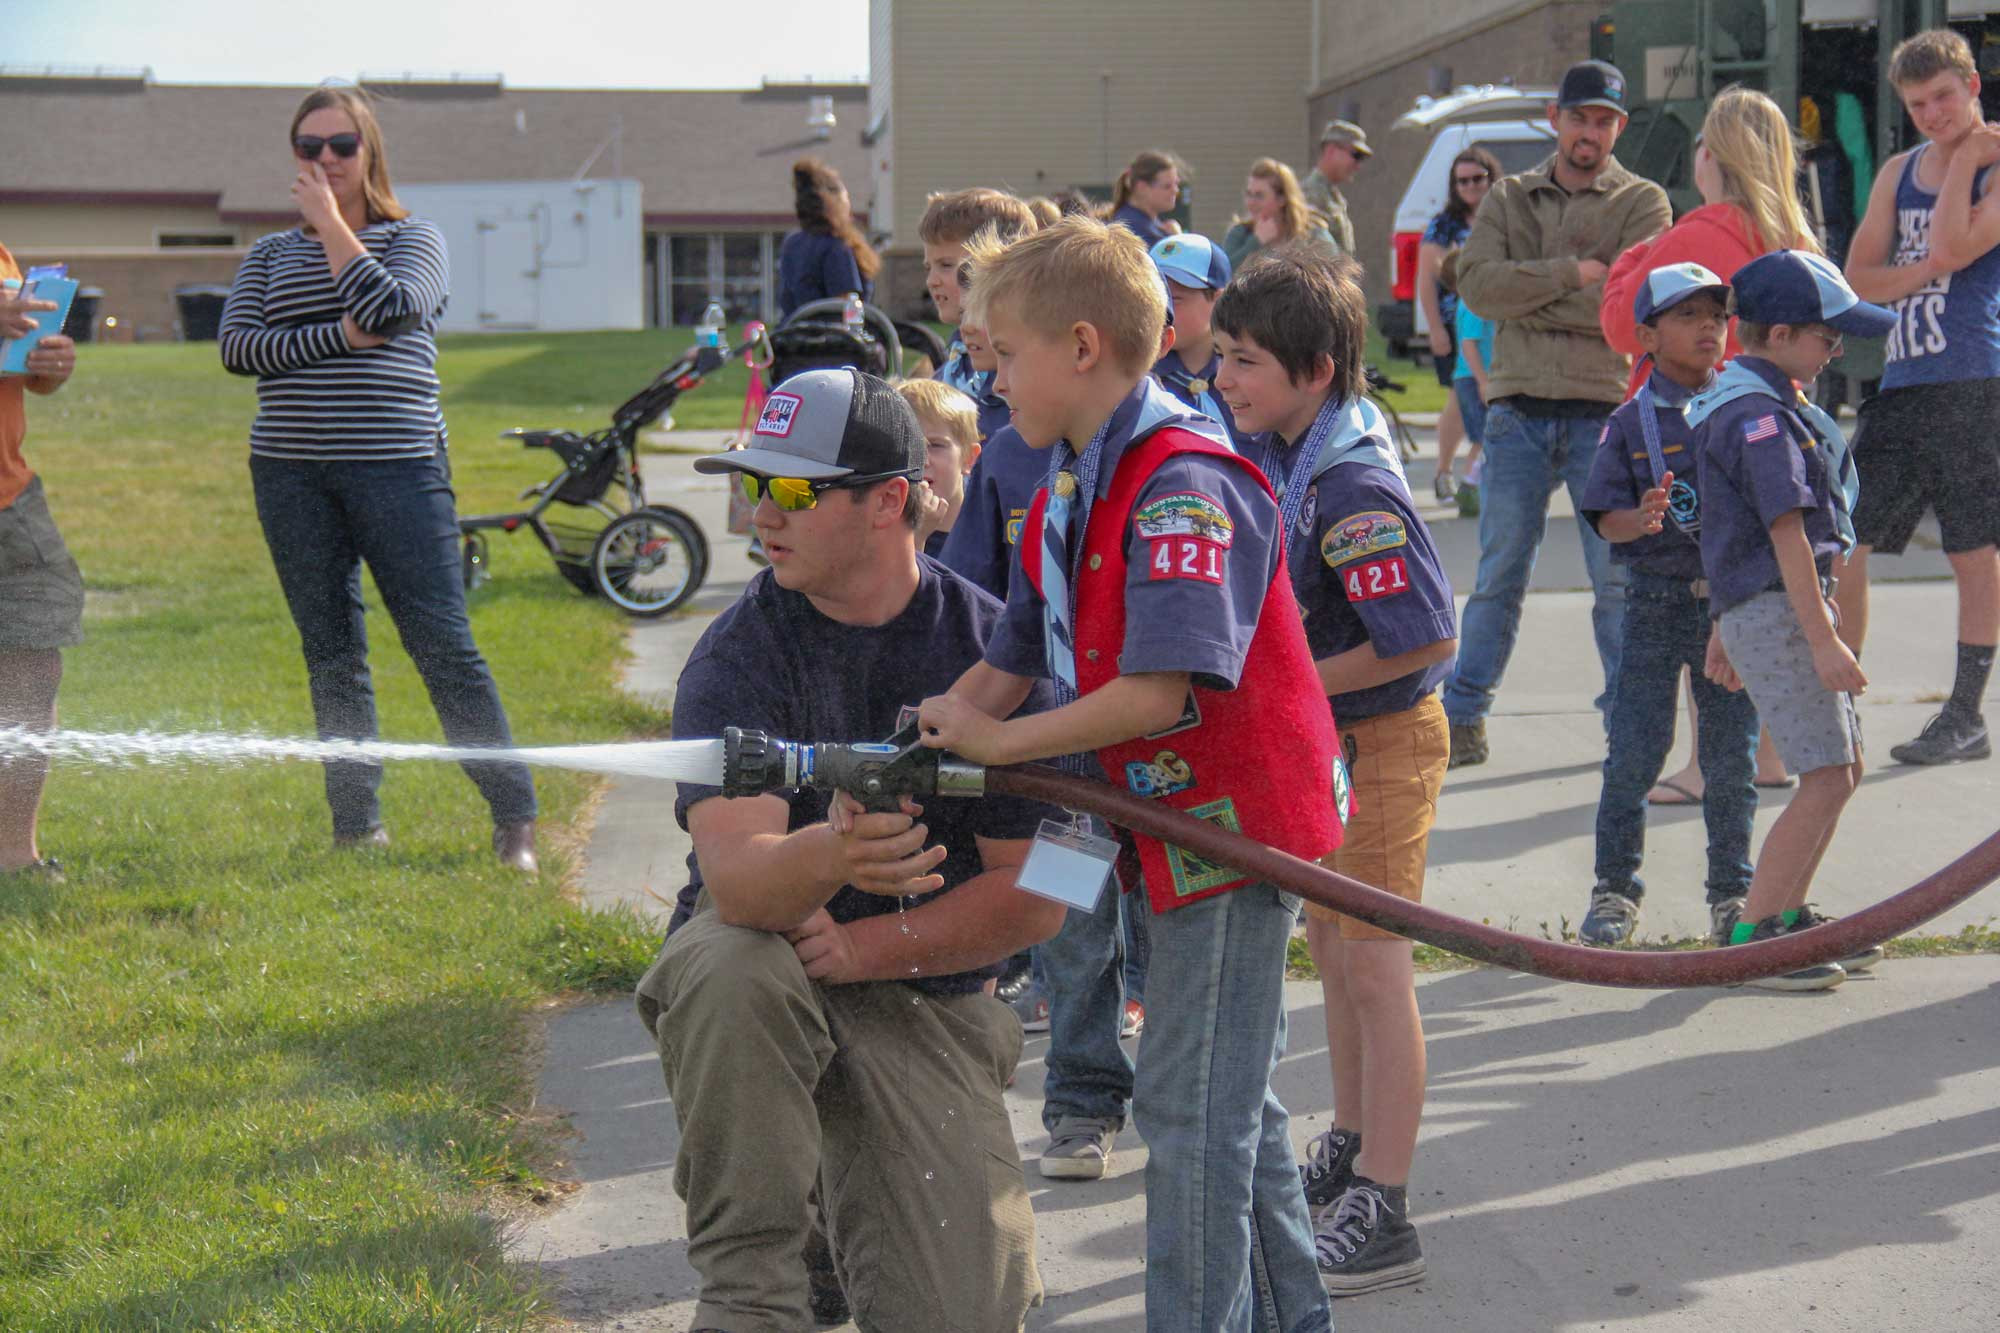 Laurel Volunteer Fire Department new hire Levi Jones helps a Laurel Cub Scout operatethe fire hose at the Middle School last week during Pack 421's fall meeting. A variety ofemergency personnel as well as the Billings Army Reserve and DNRC were on hand toshow the scouts a little of what they do.